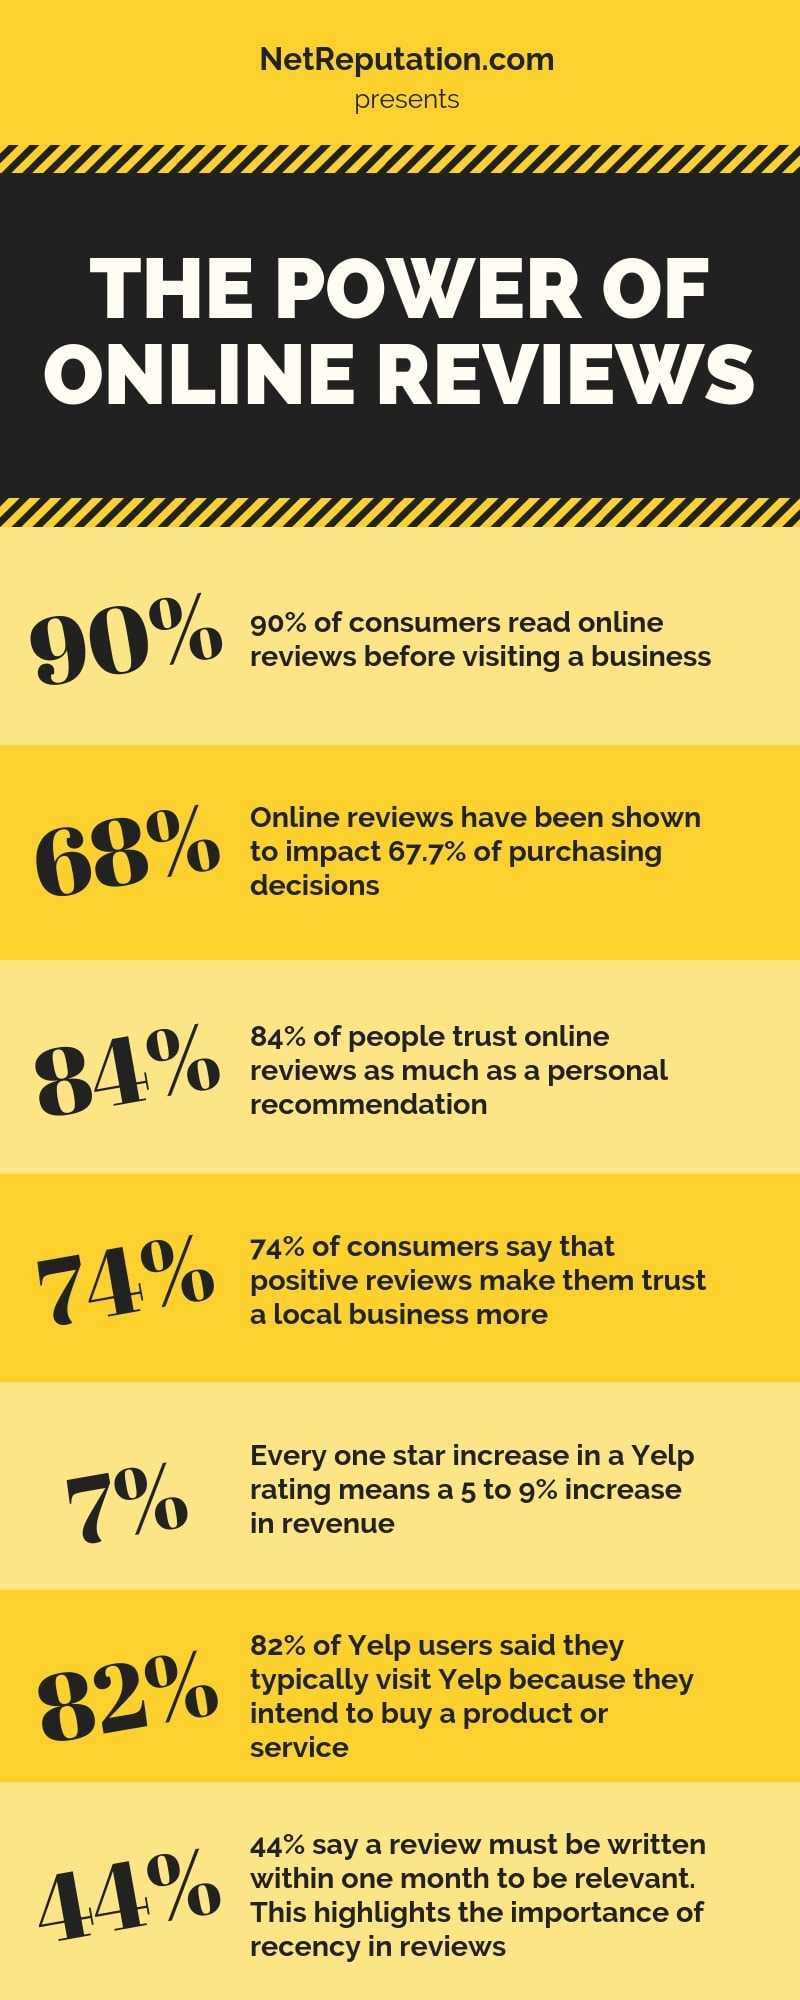 The power of online reviews